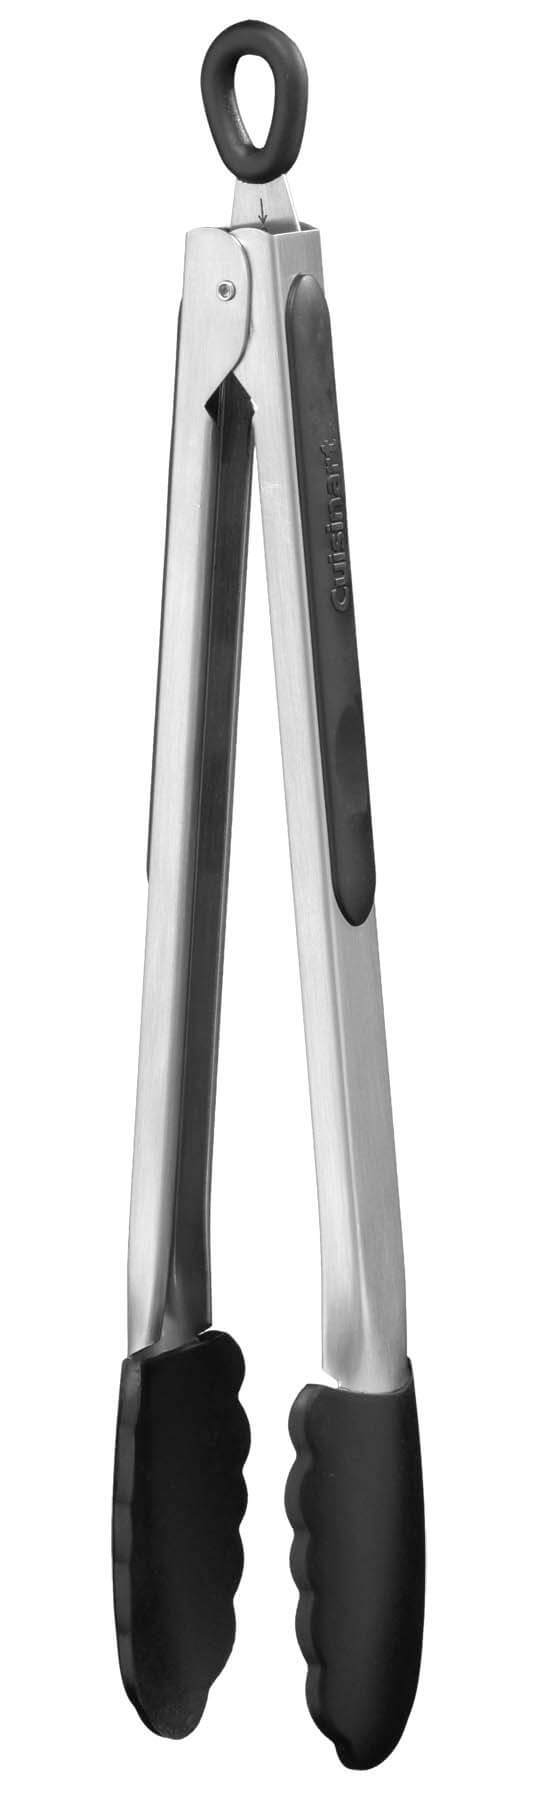 "Cuisinart 12"" Silicone Tipped Tongs"